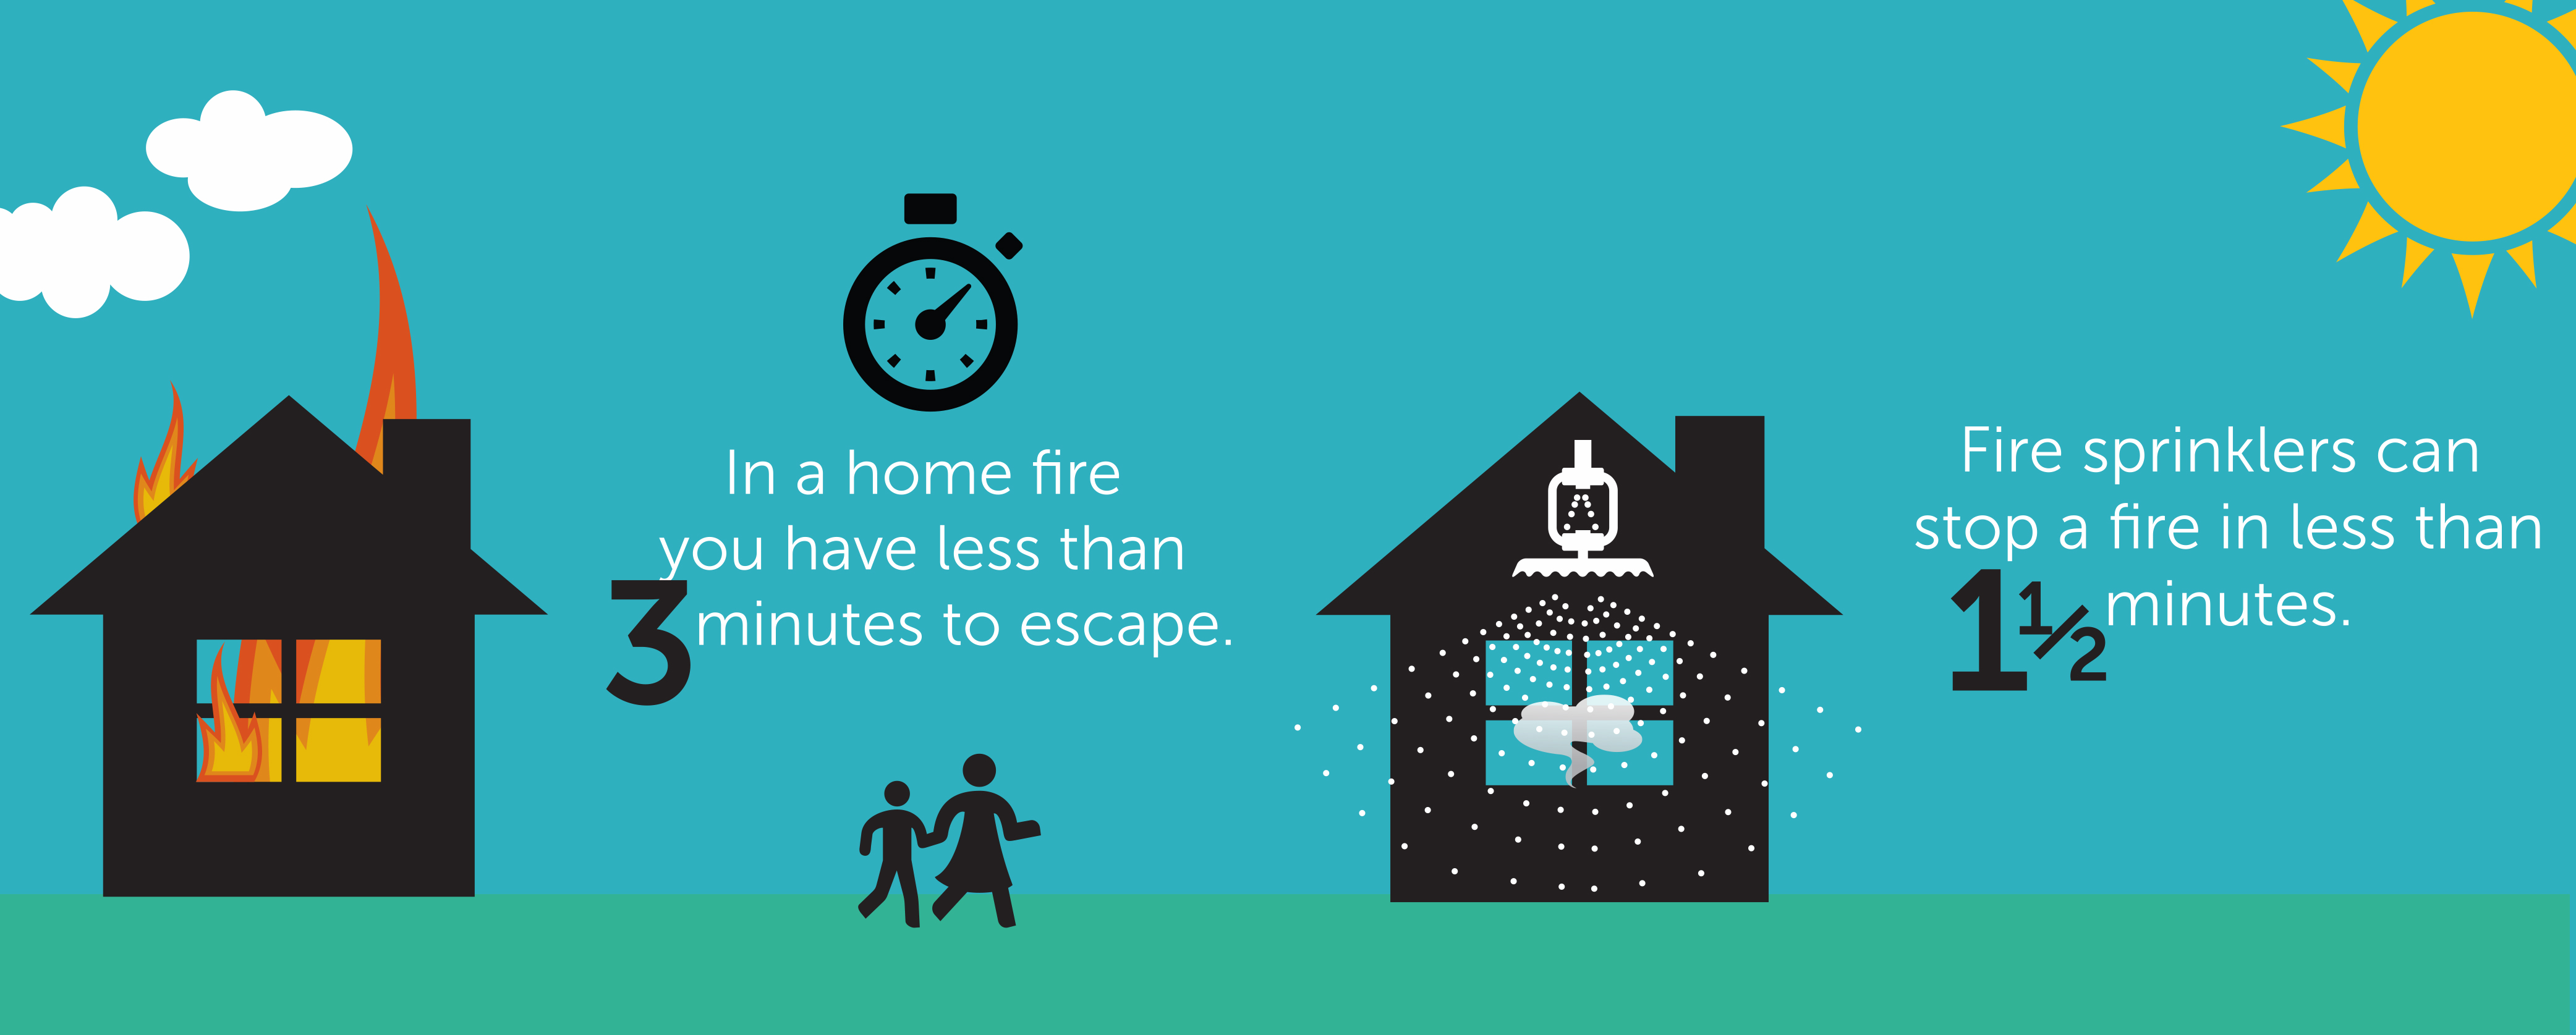 In a home fire you have less than three minutes to escape. Fire sprinklers can stop a fire in less than one and a half minutes.